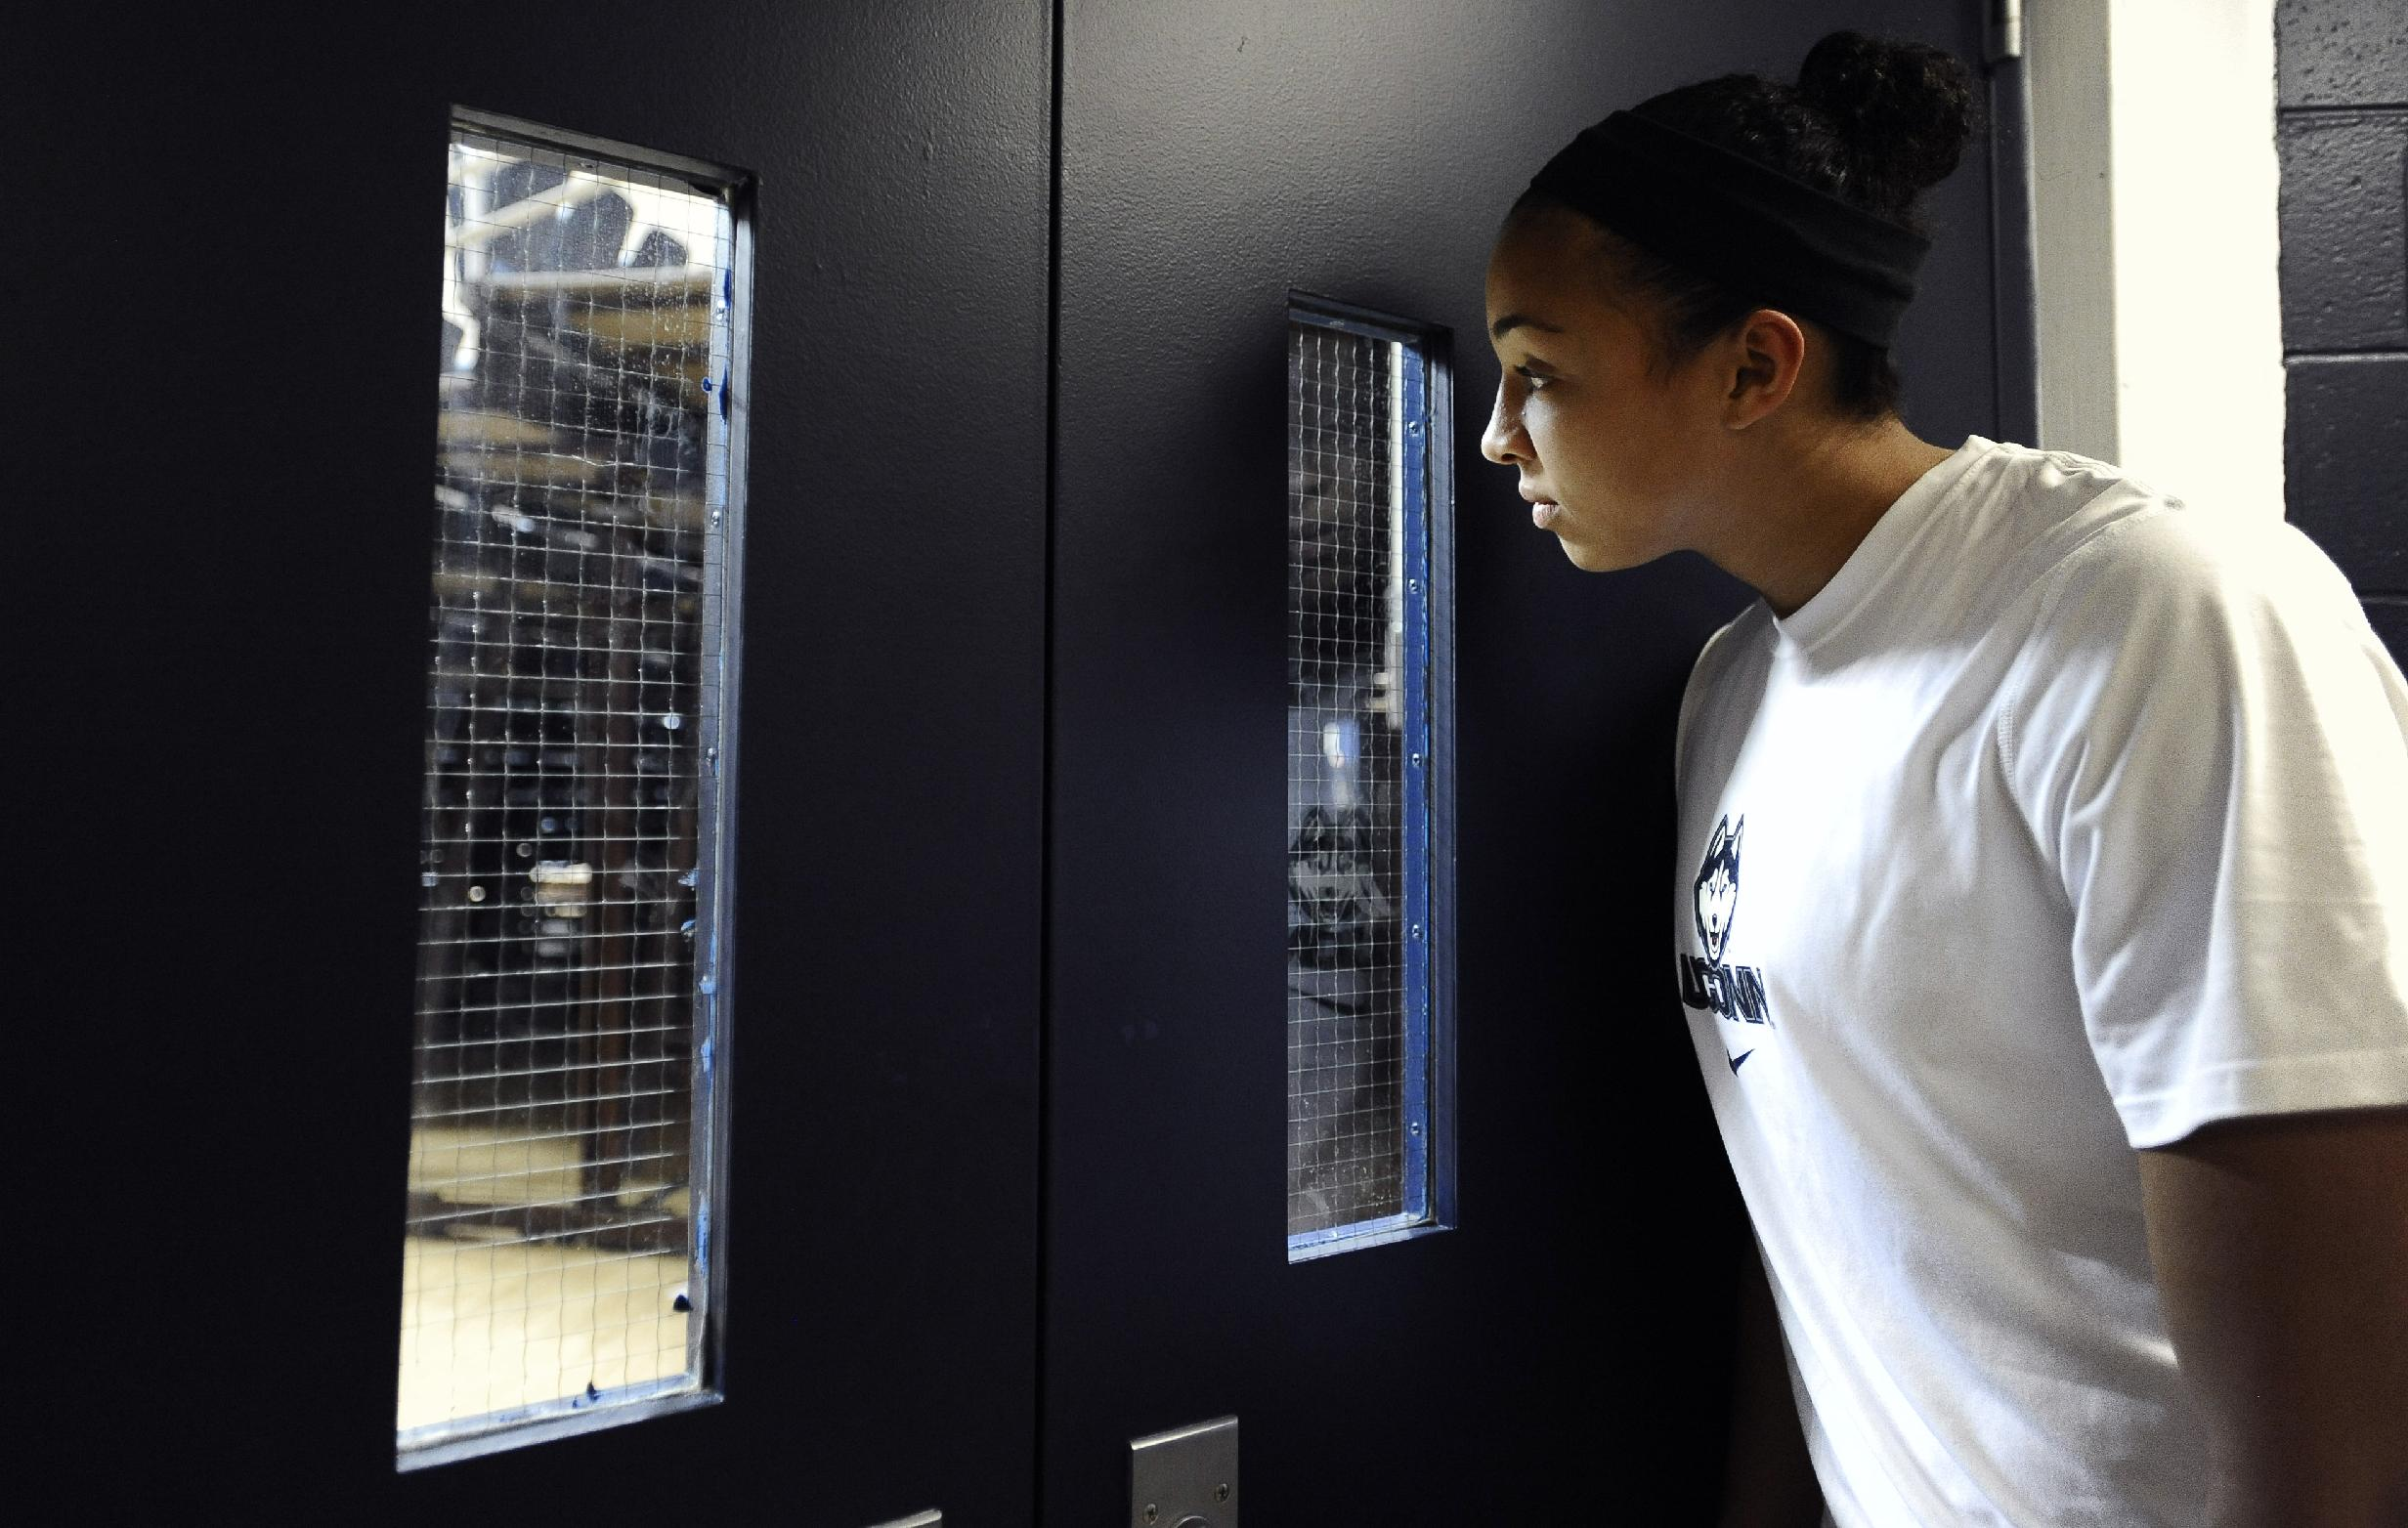 Connecticut's Kiah Stokes watches the men's basketball team during their NCAA college basketball media day, Monday, Sept. 30, 2013, in Storrs, Conn